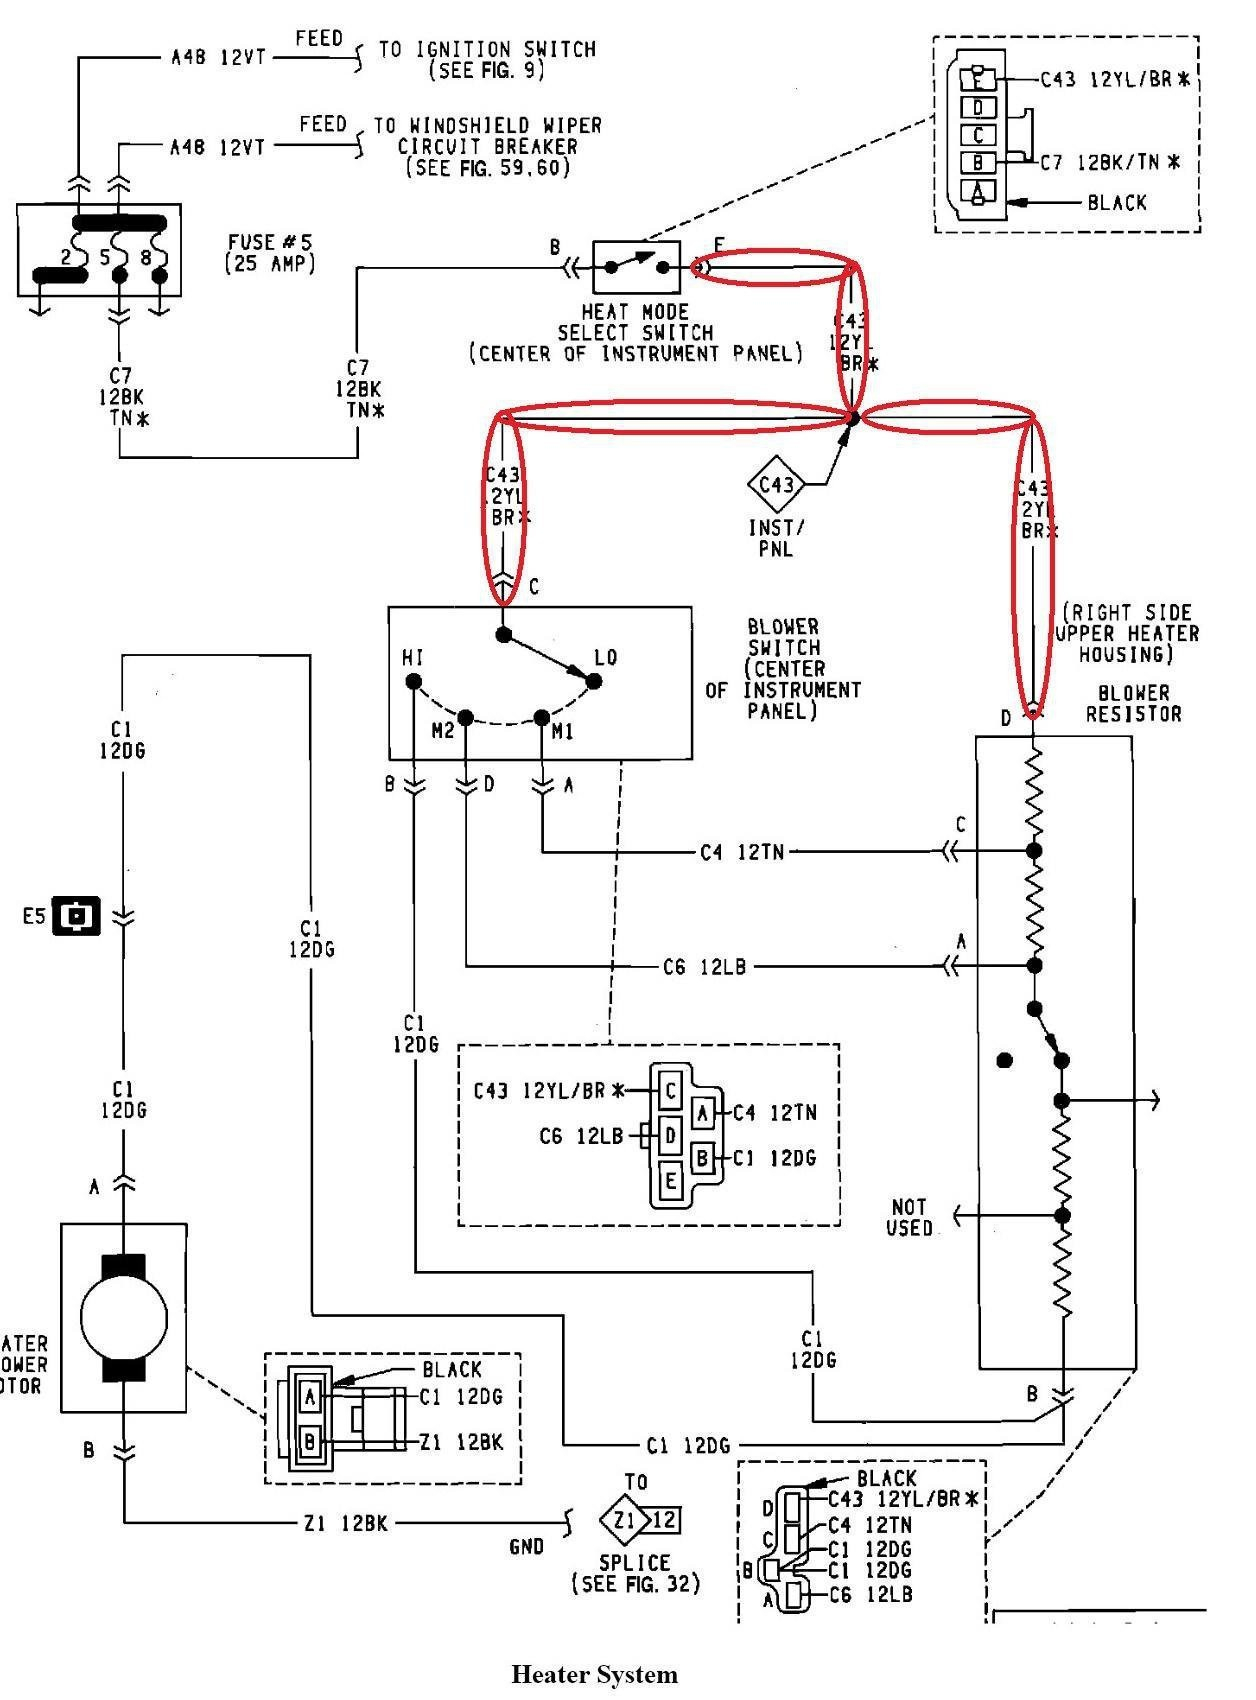 [SCHEMATICS_4US]  DIAGRAM] Cushman 36 Volt Wiring Diagram FULL Version HD Quality Wiring  Diagram - DDWIRING.LES-CAFES-DERIC-ORLEANS.FR | Cushman 24 Volt Wiring Diagram |  | Best Diagram Database